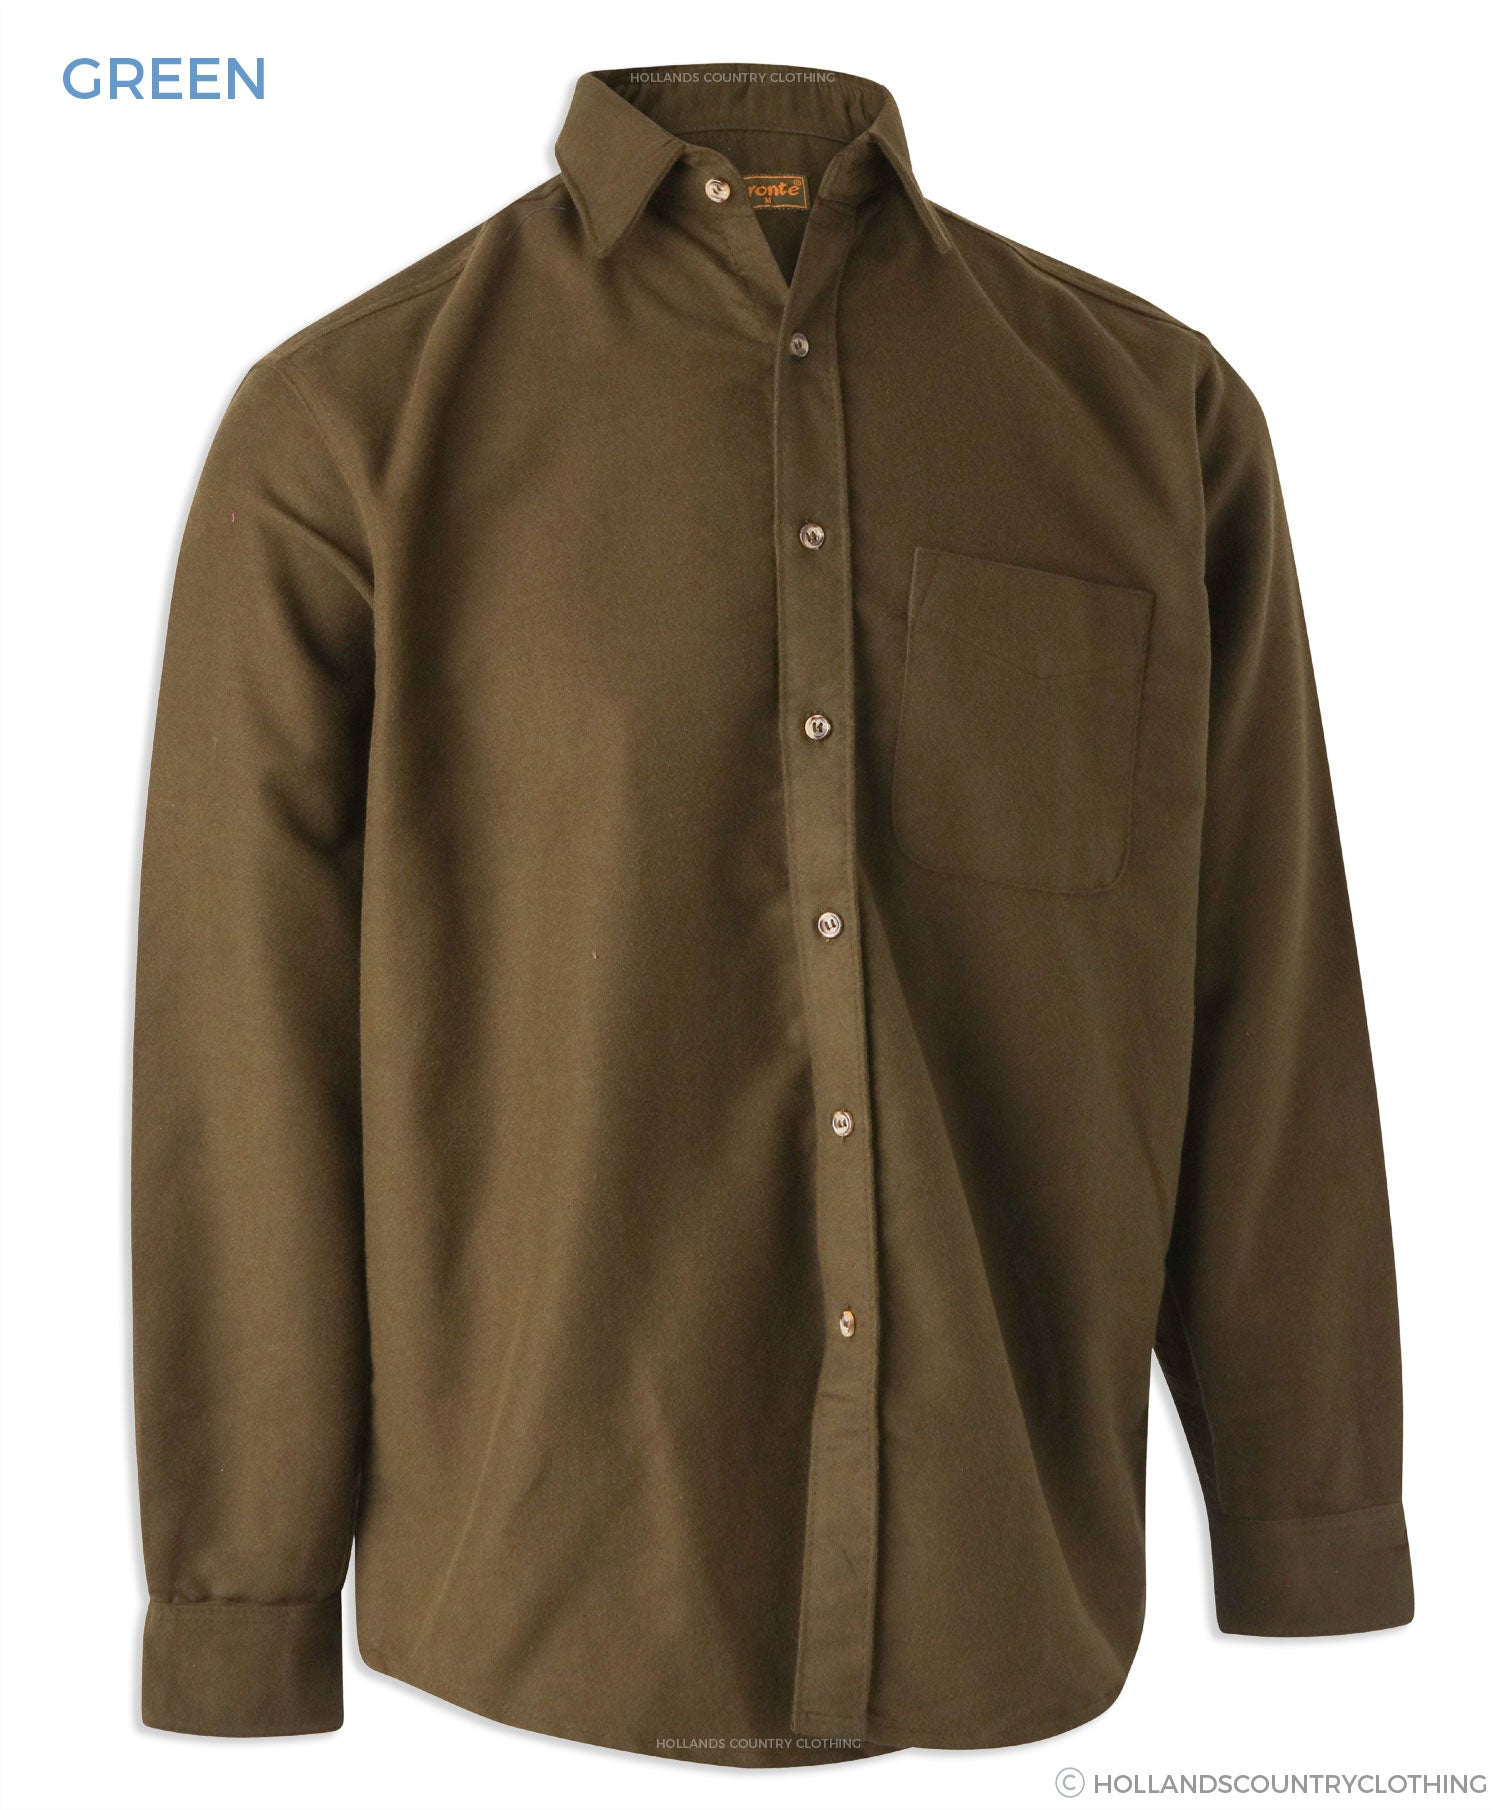 superior quality Bronte Moleskin Country Shirt.Green